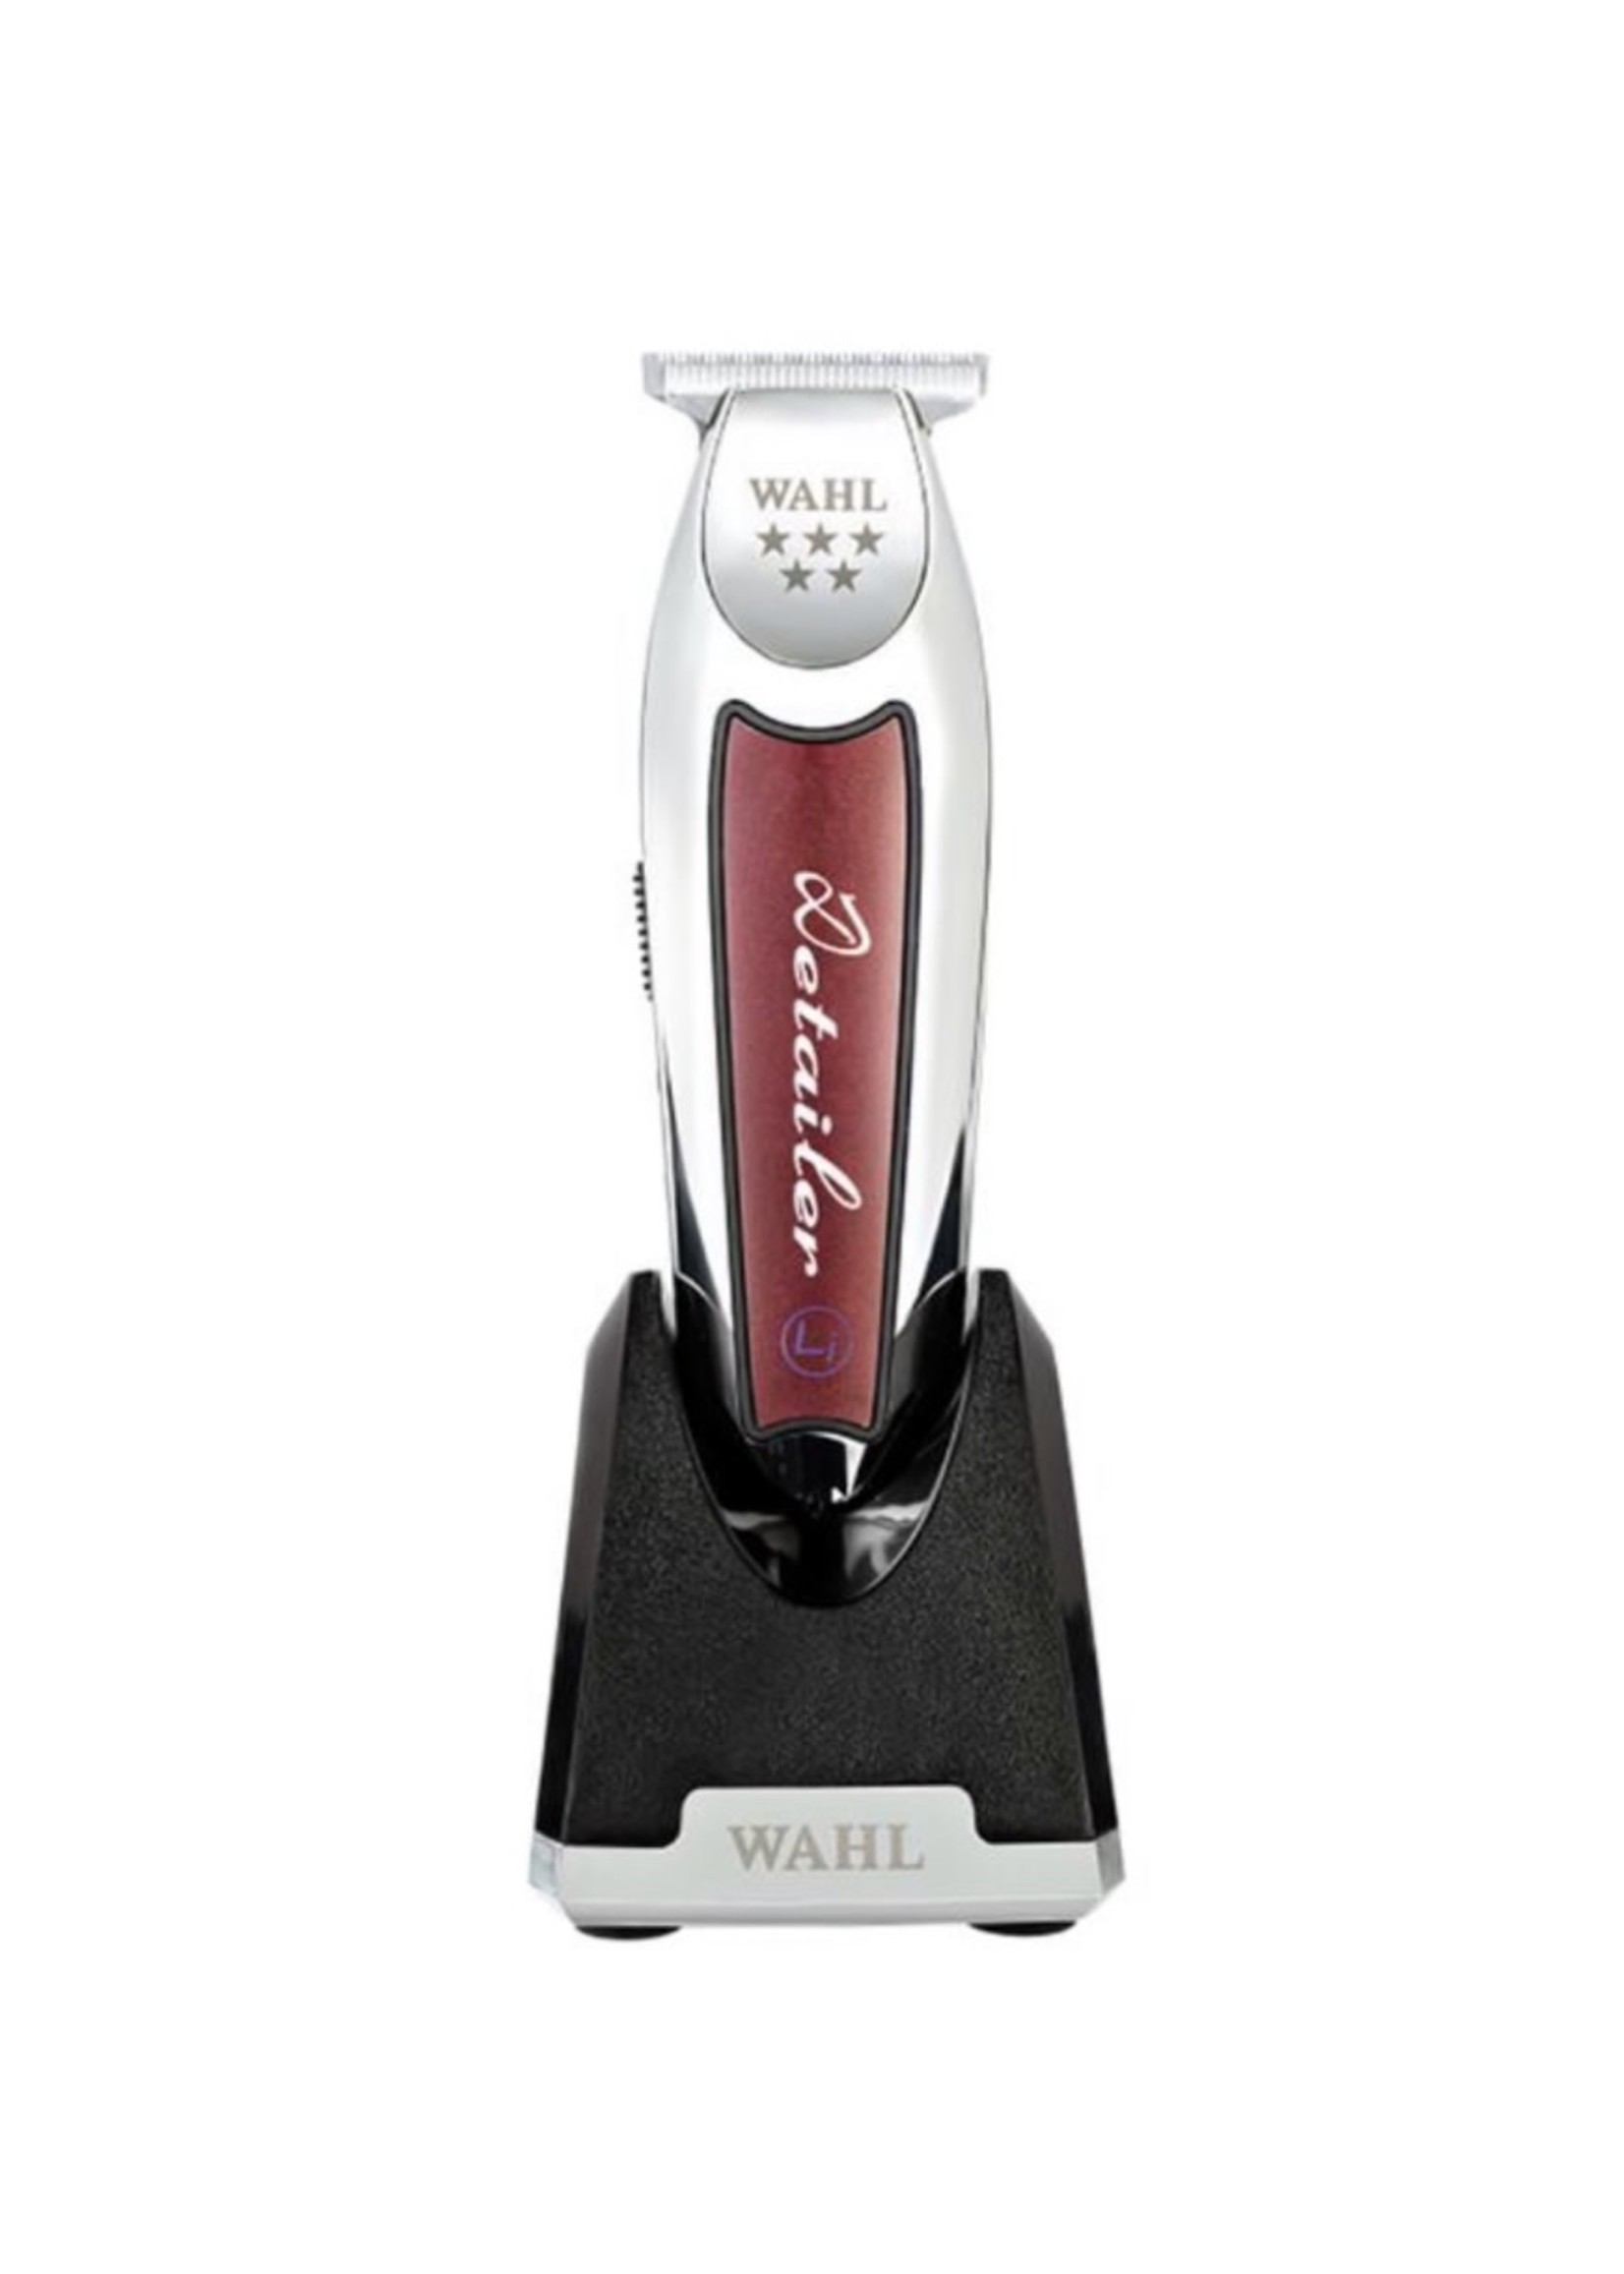 Wahl Wahl 5 Star Series Detailers Trimmers Cordless